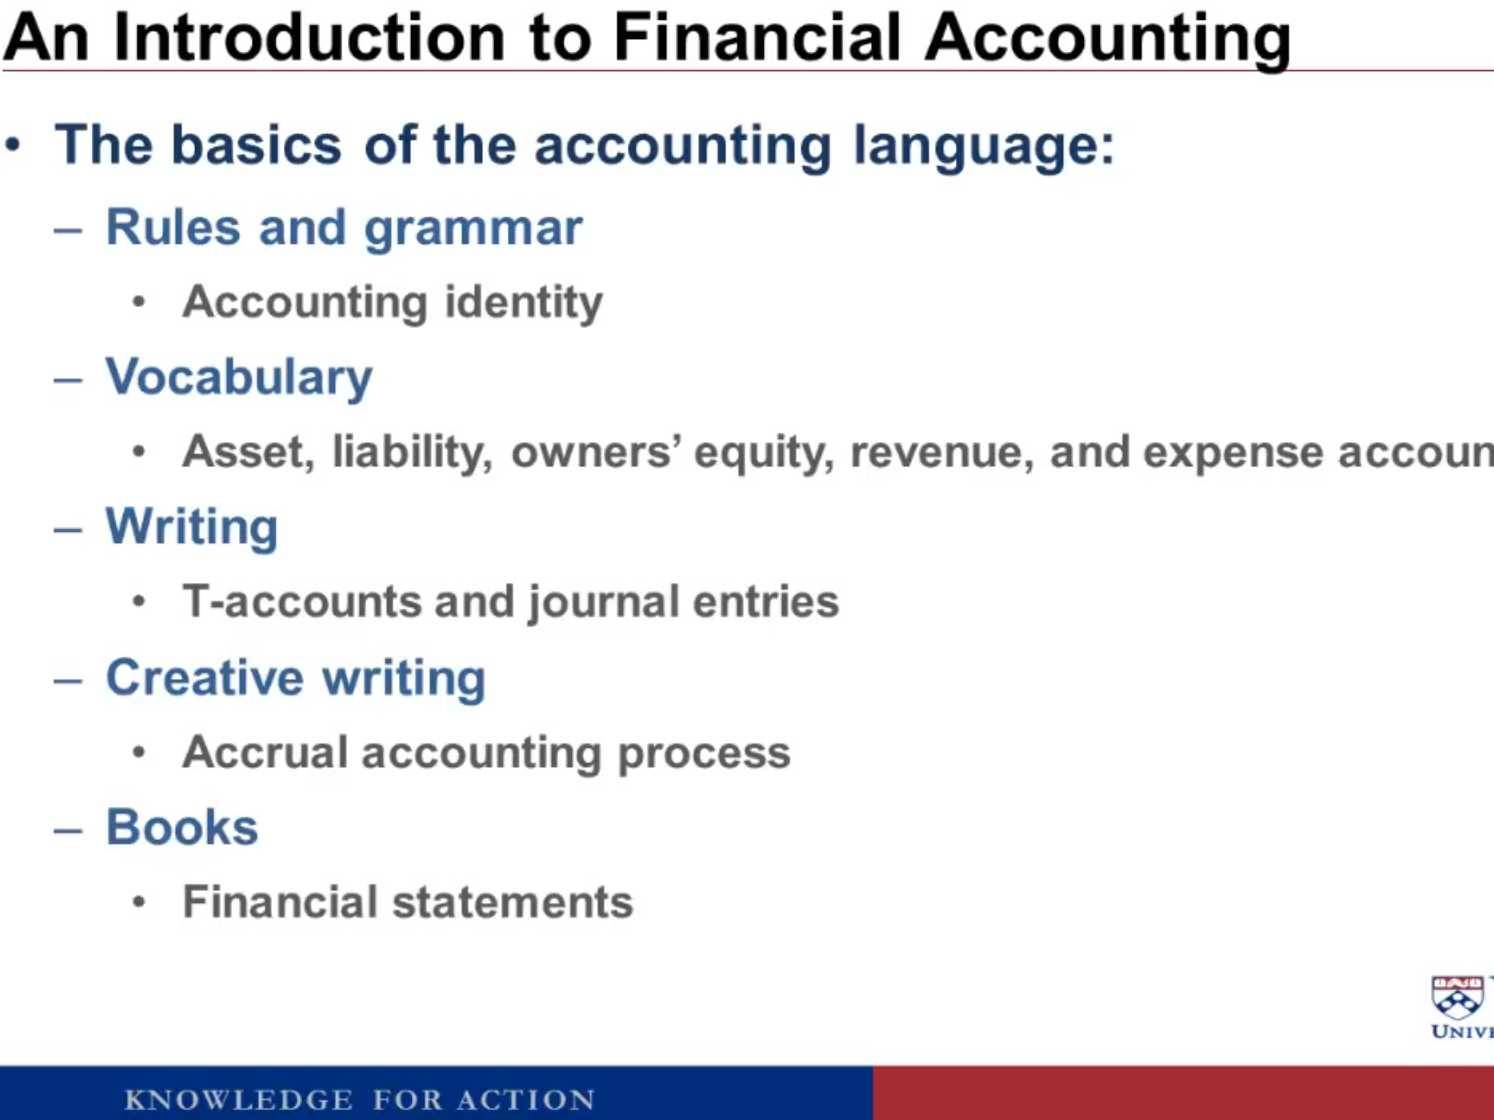 magerial finance course syllabus Definition of managerial finance: the assessment of finance techniques to determine how they affect the business internally and externally.